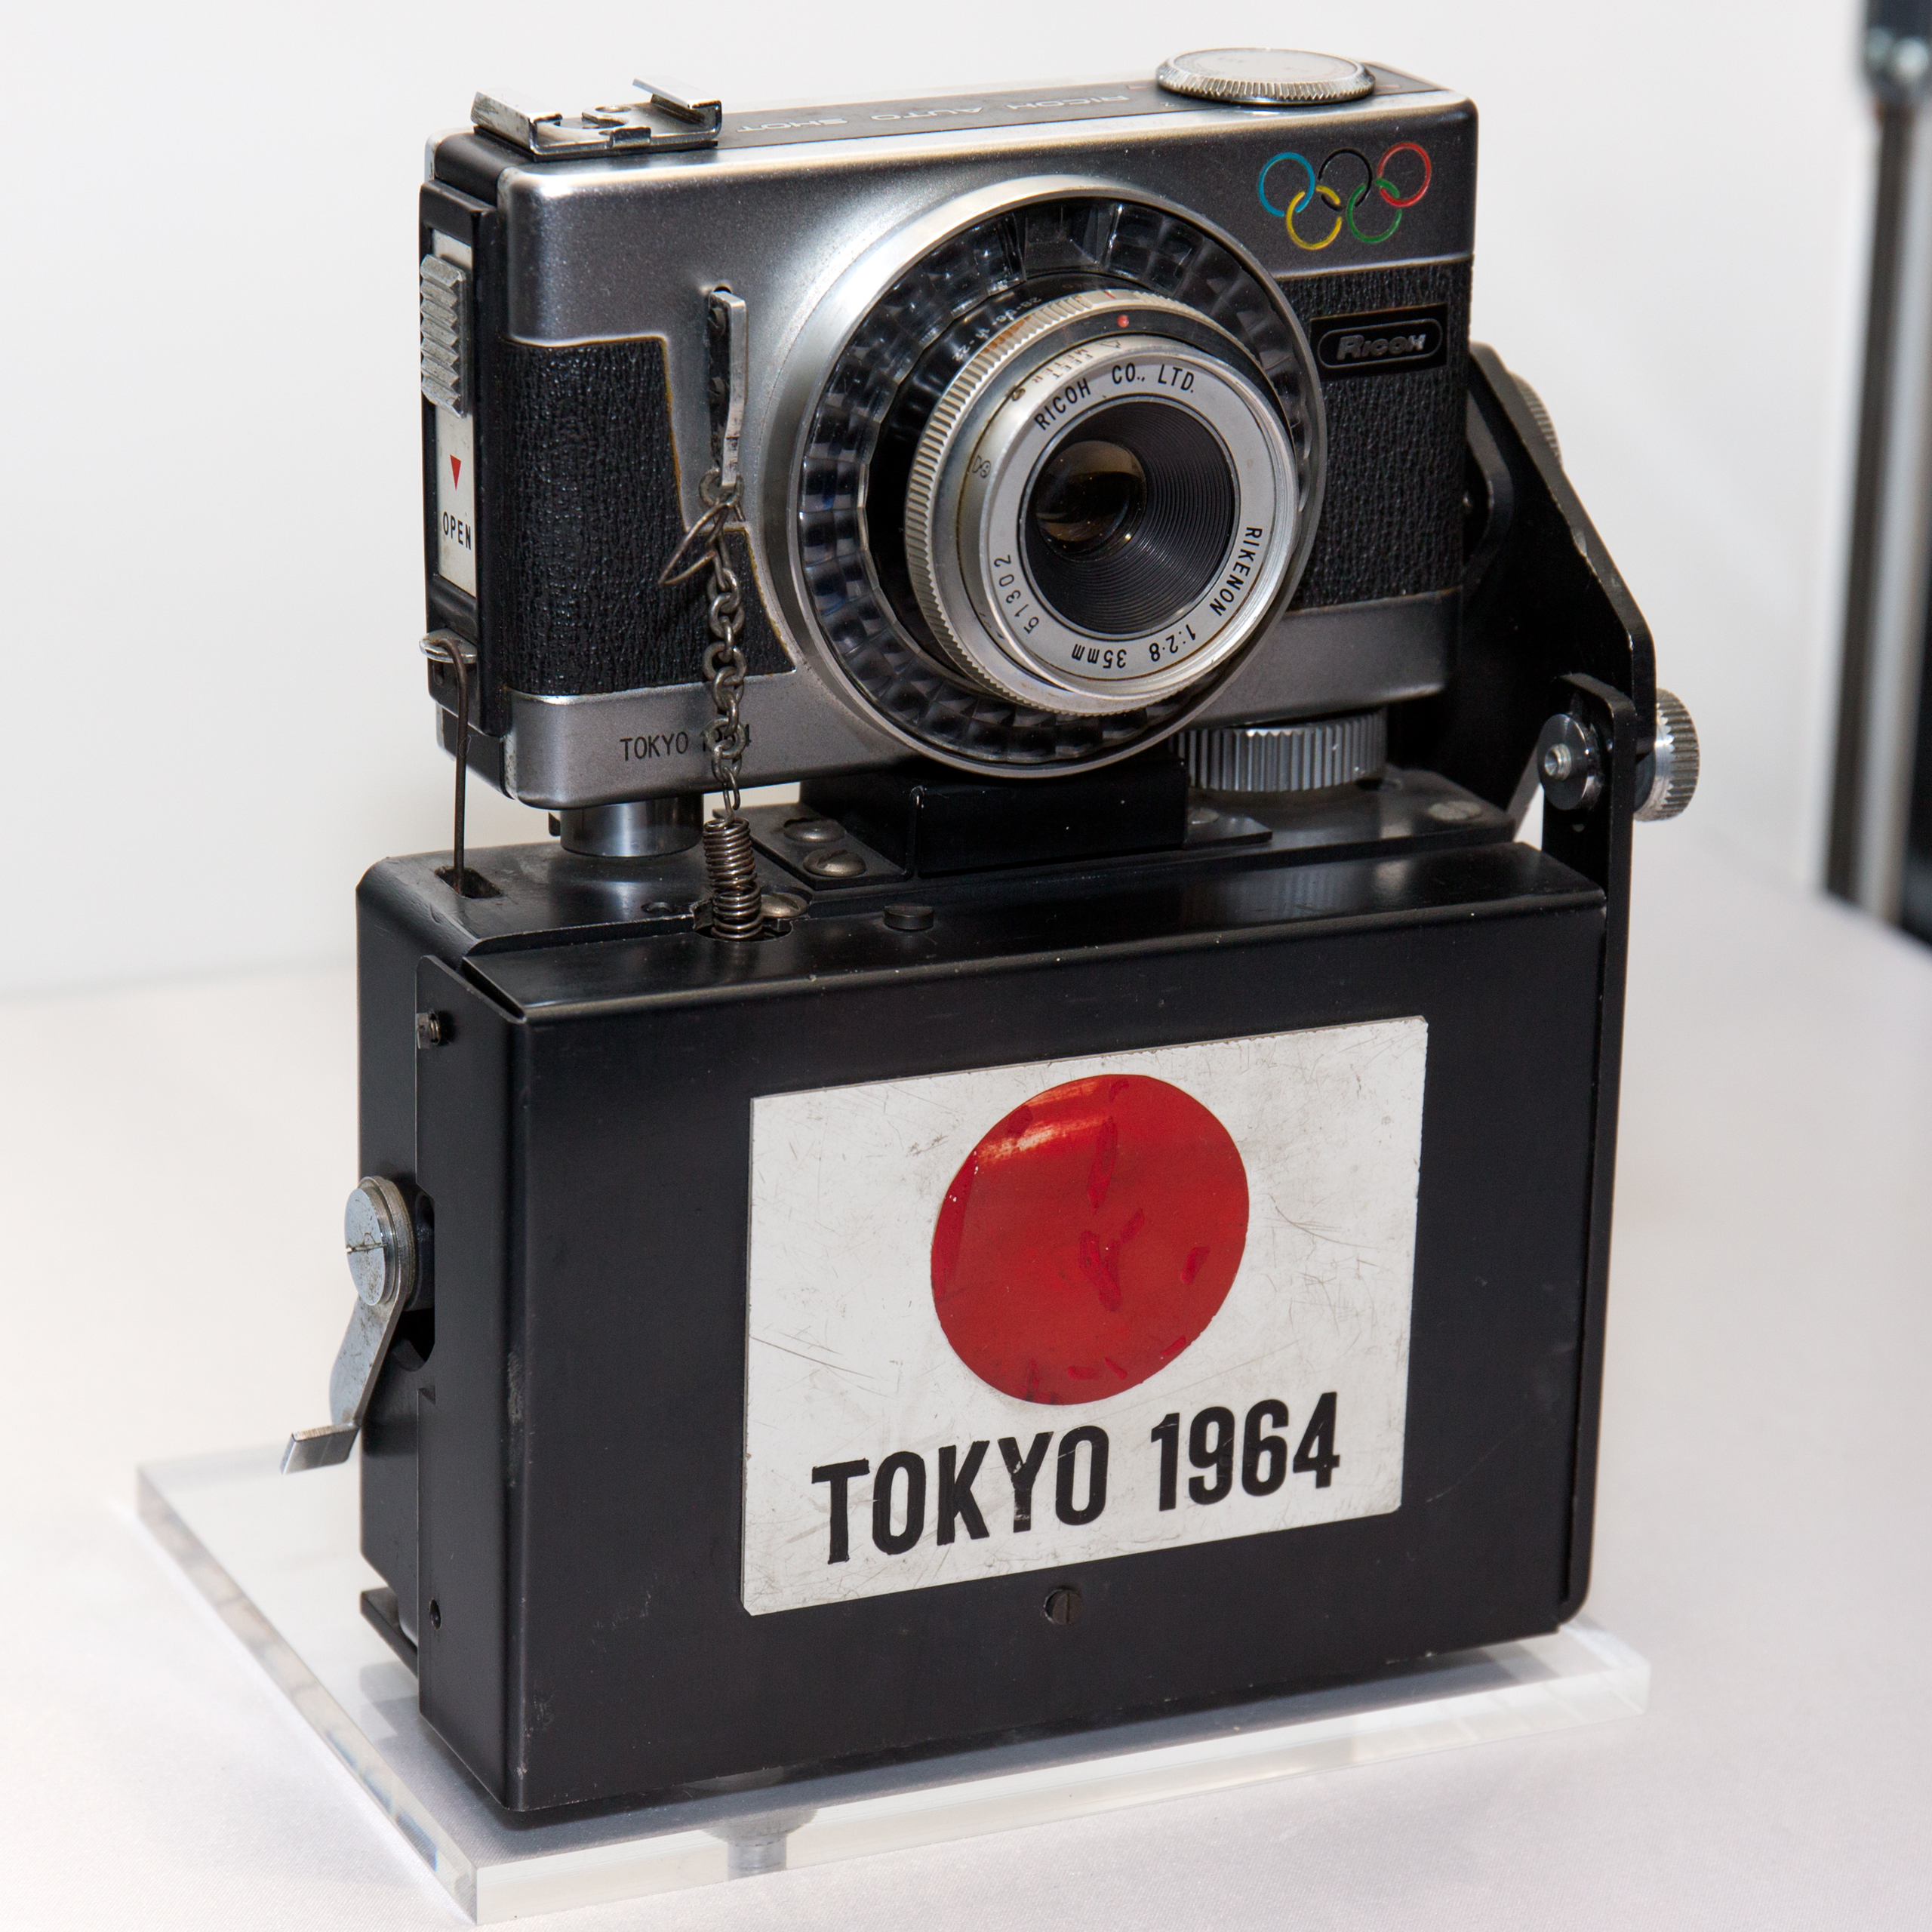 File Ricoh Auto Shot for 1964 Summer Olympics finish line recording